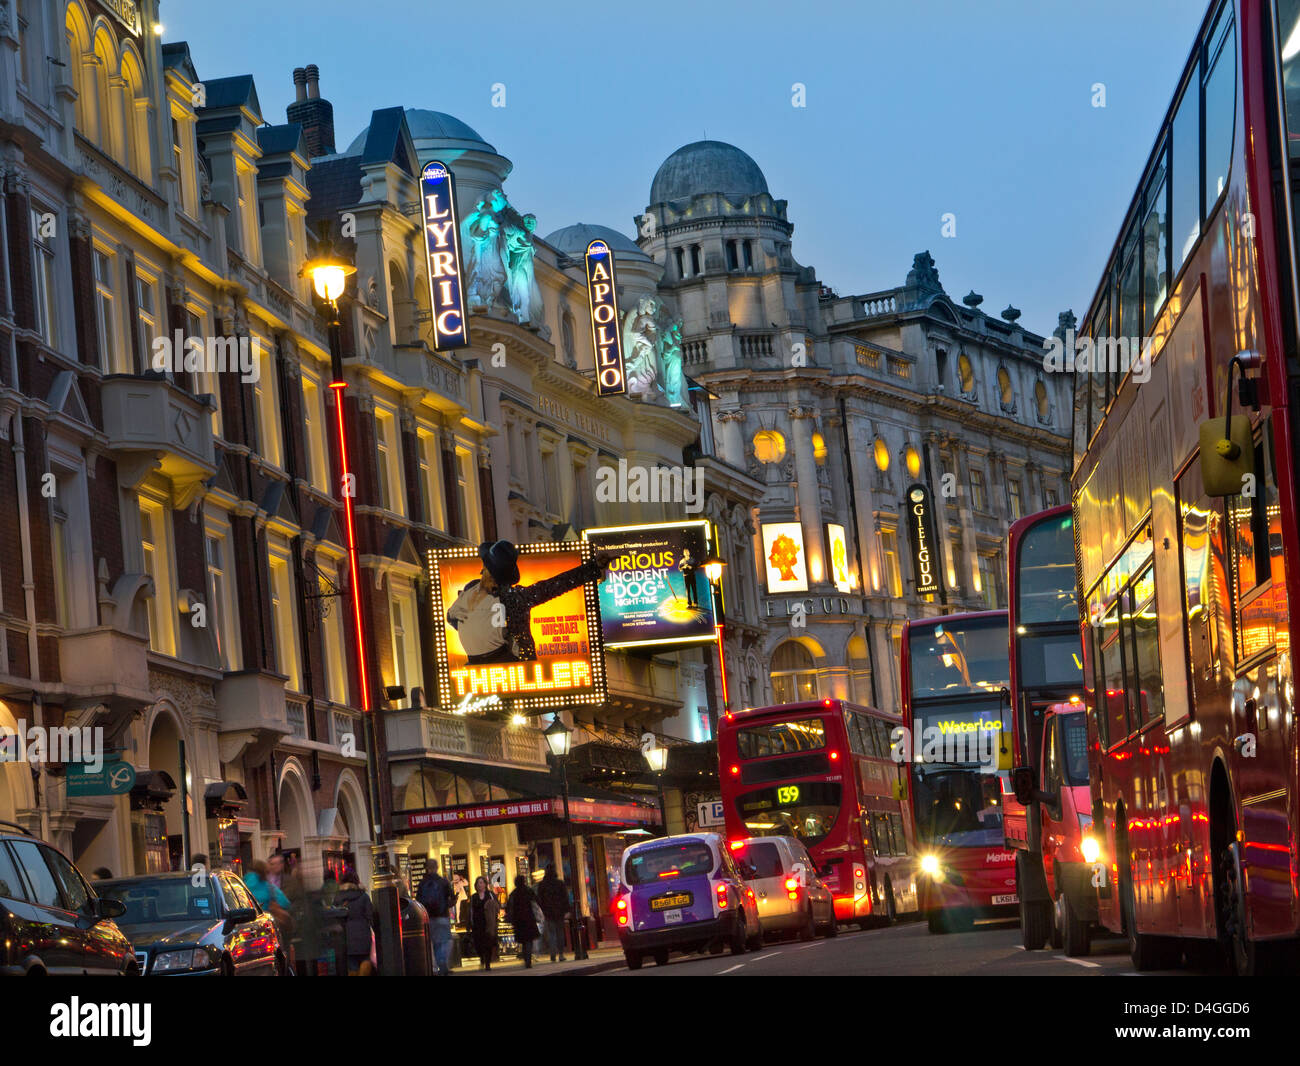 Theatreland with red buses in Shaftesbury Avenue West End London UK - Stock Image